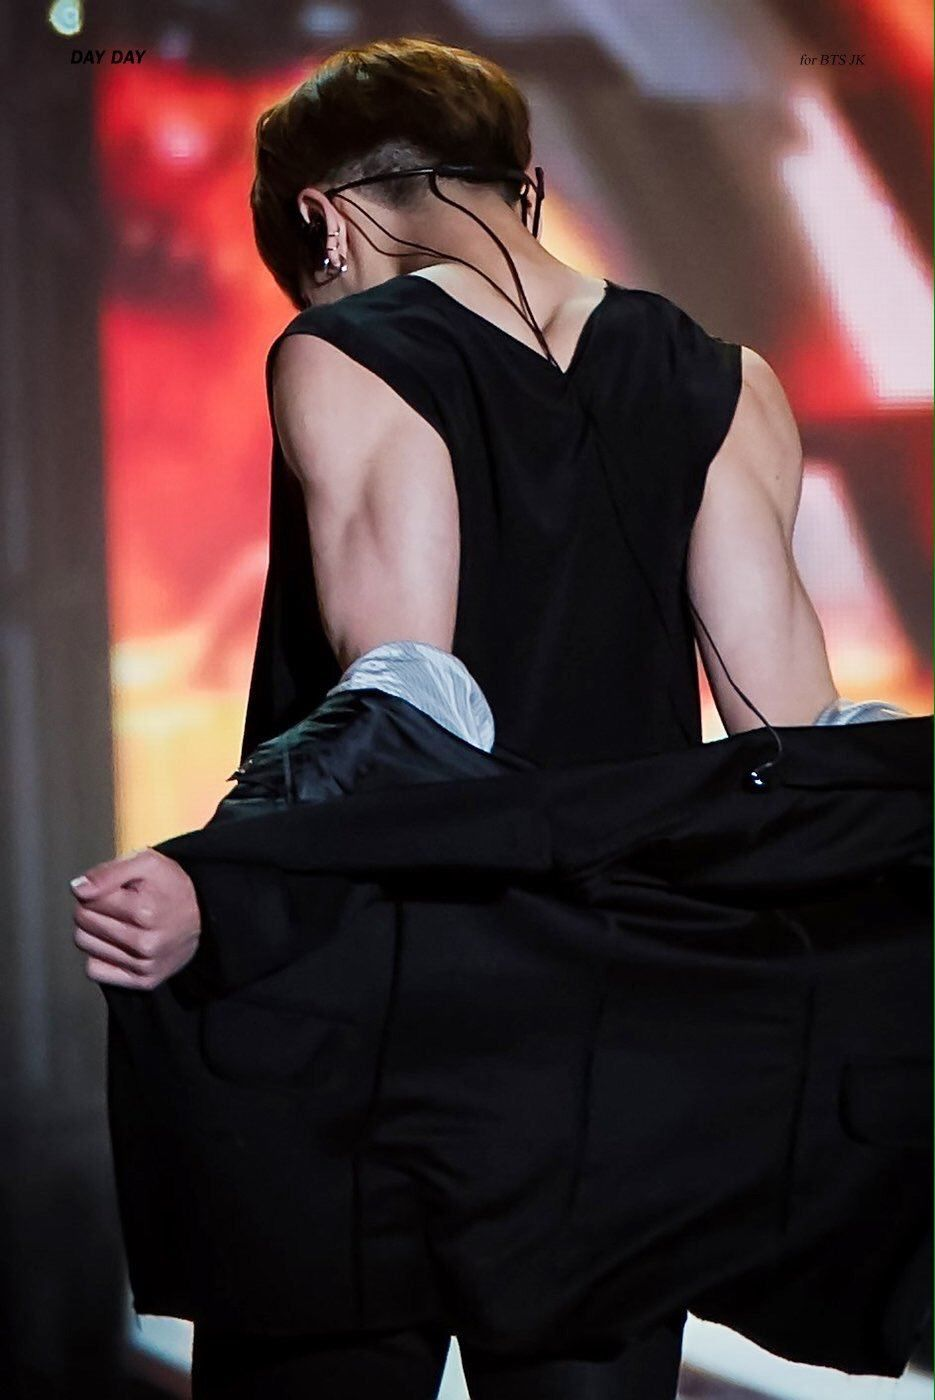 15 Male Idols With The Sexiest Arms In K Pop Koreaboo Jungkook Jungkook Abs Jungkook Hot